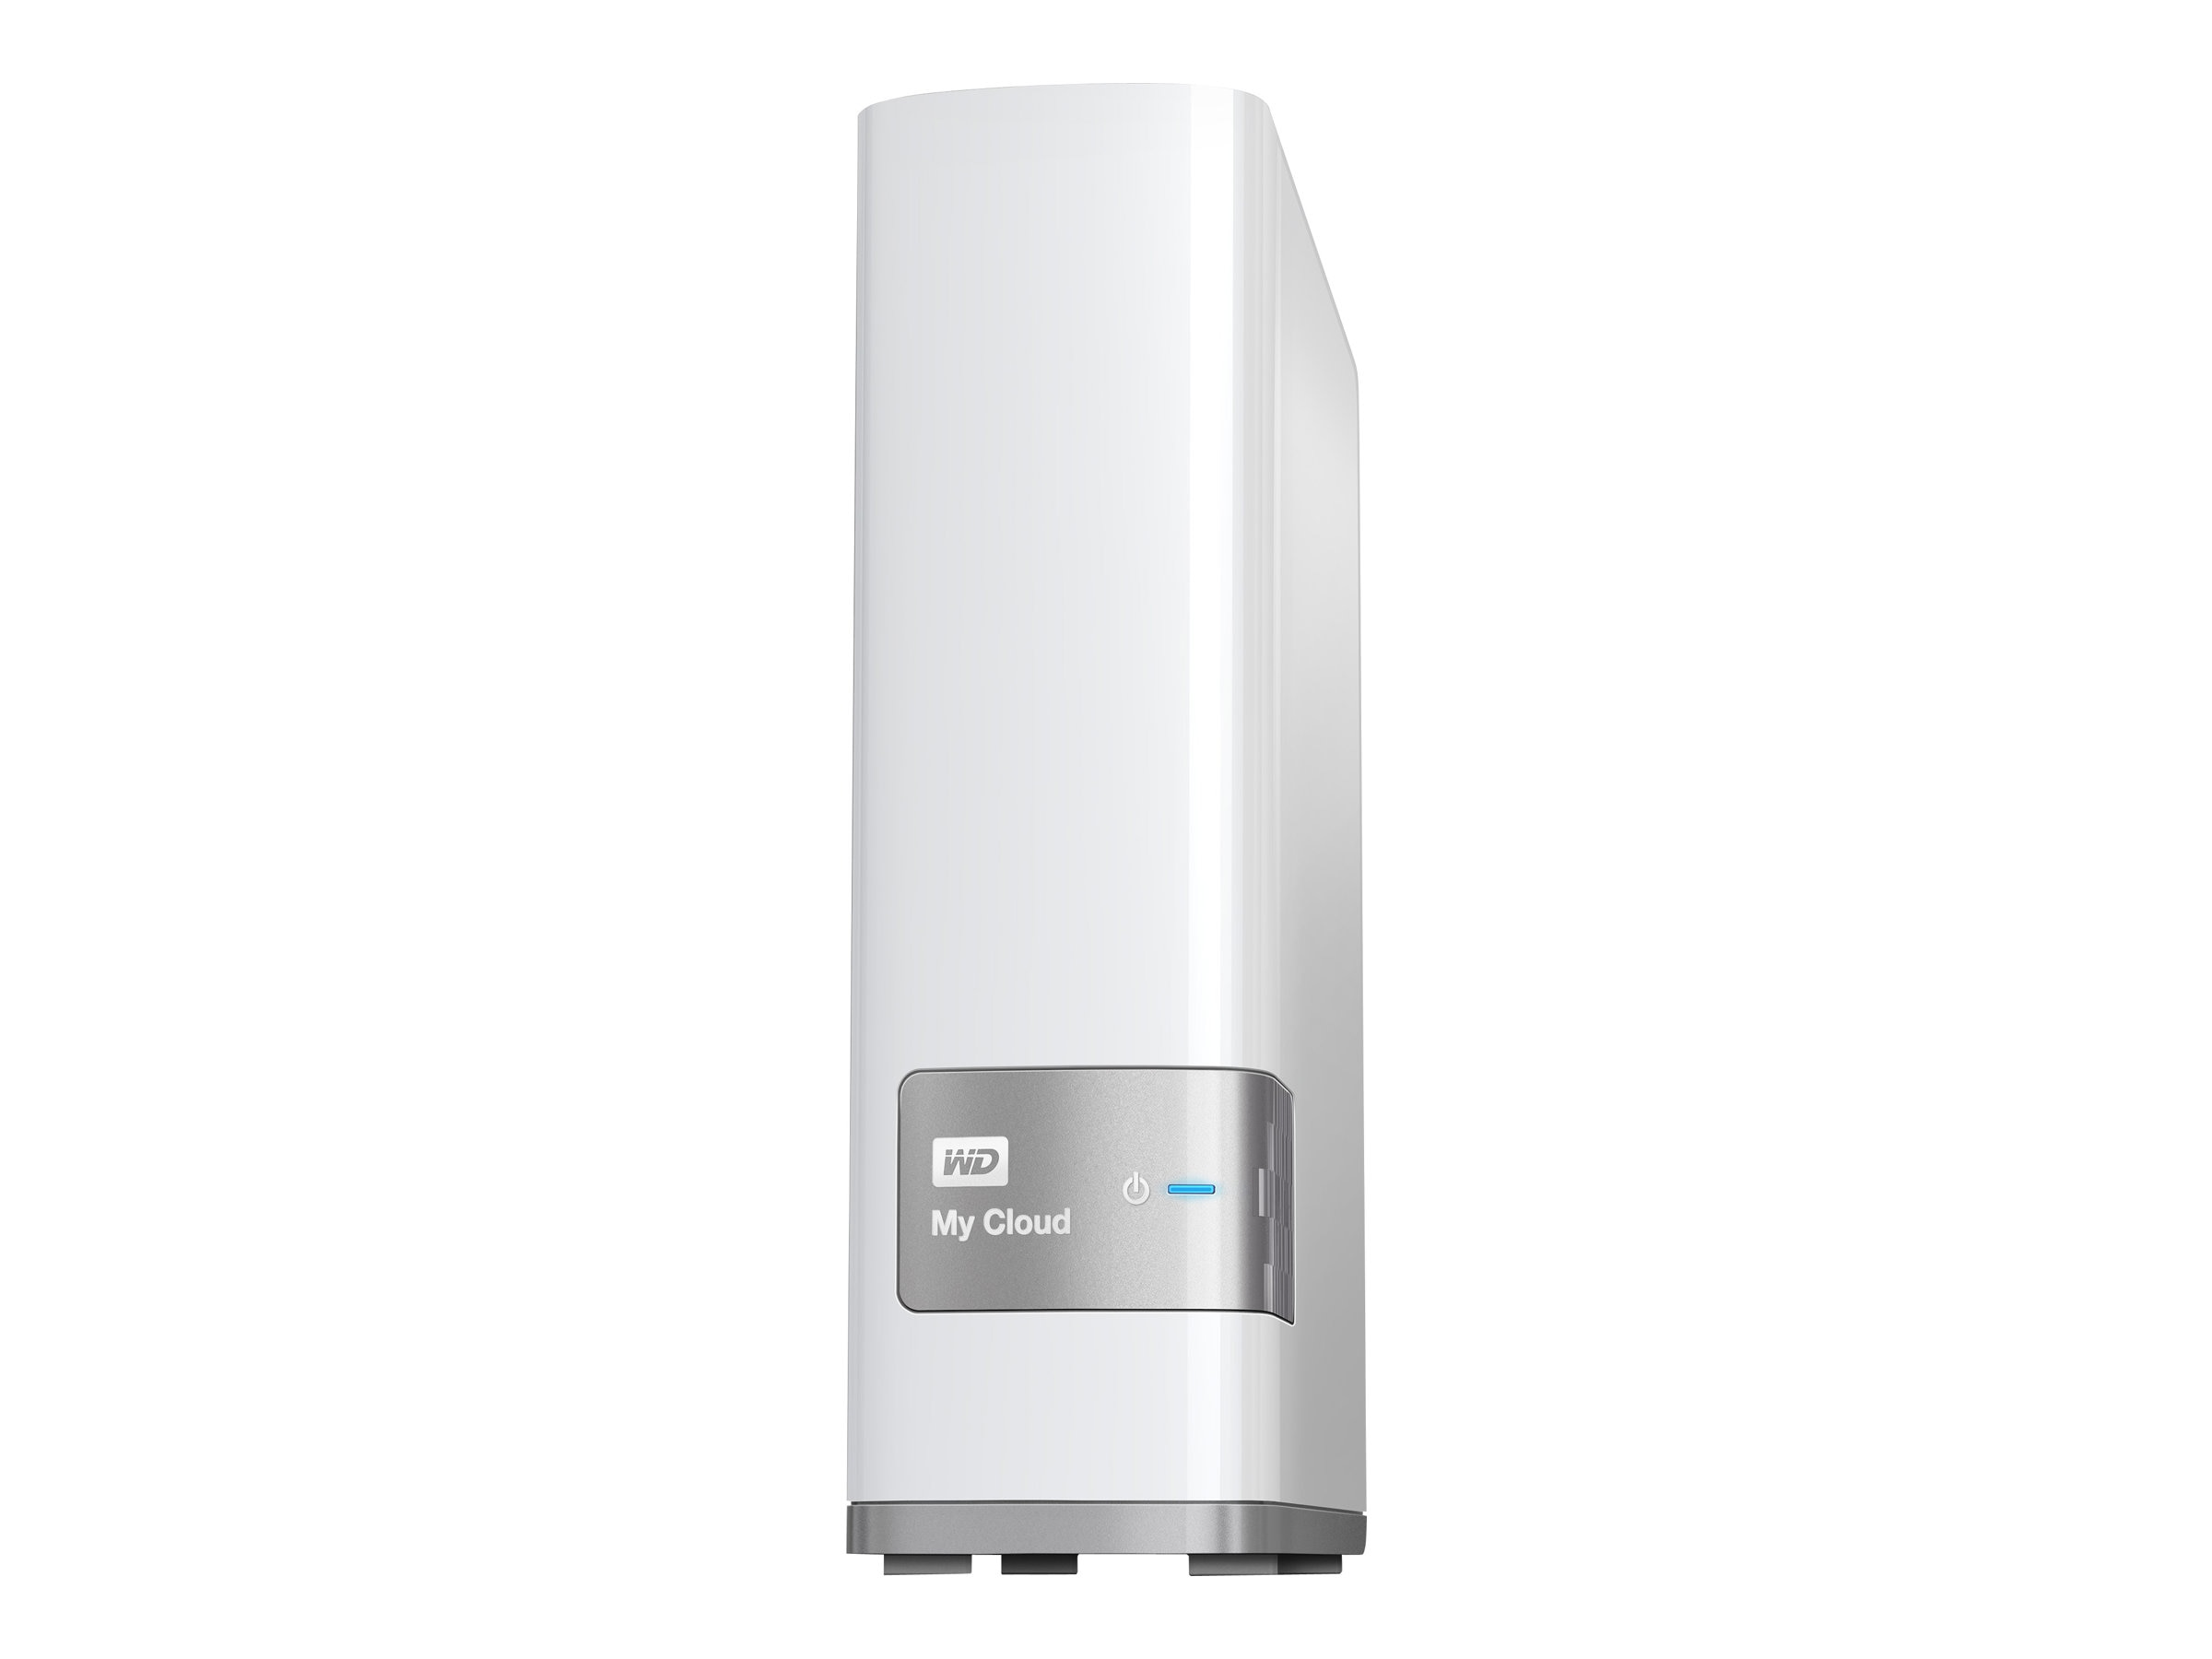 WD 4TB My Cloud Personal NAS